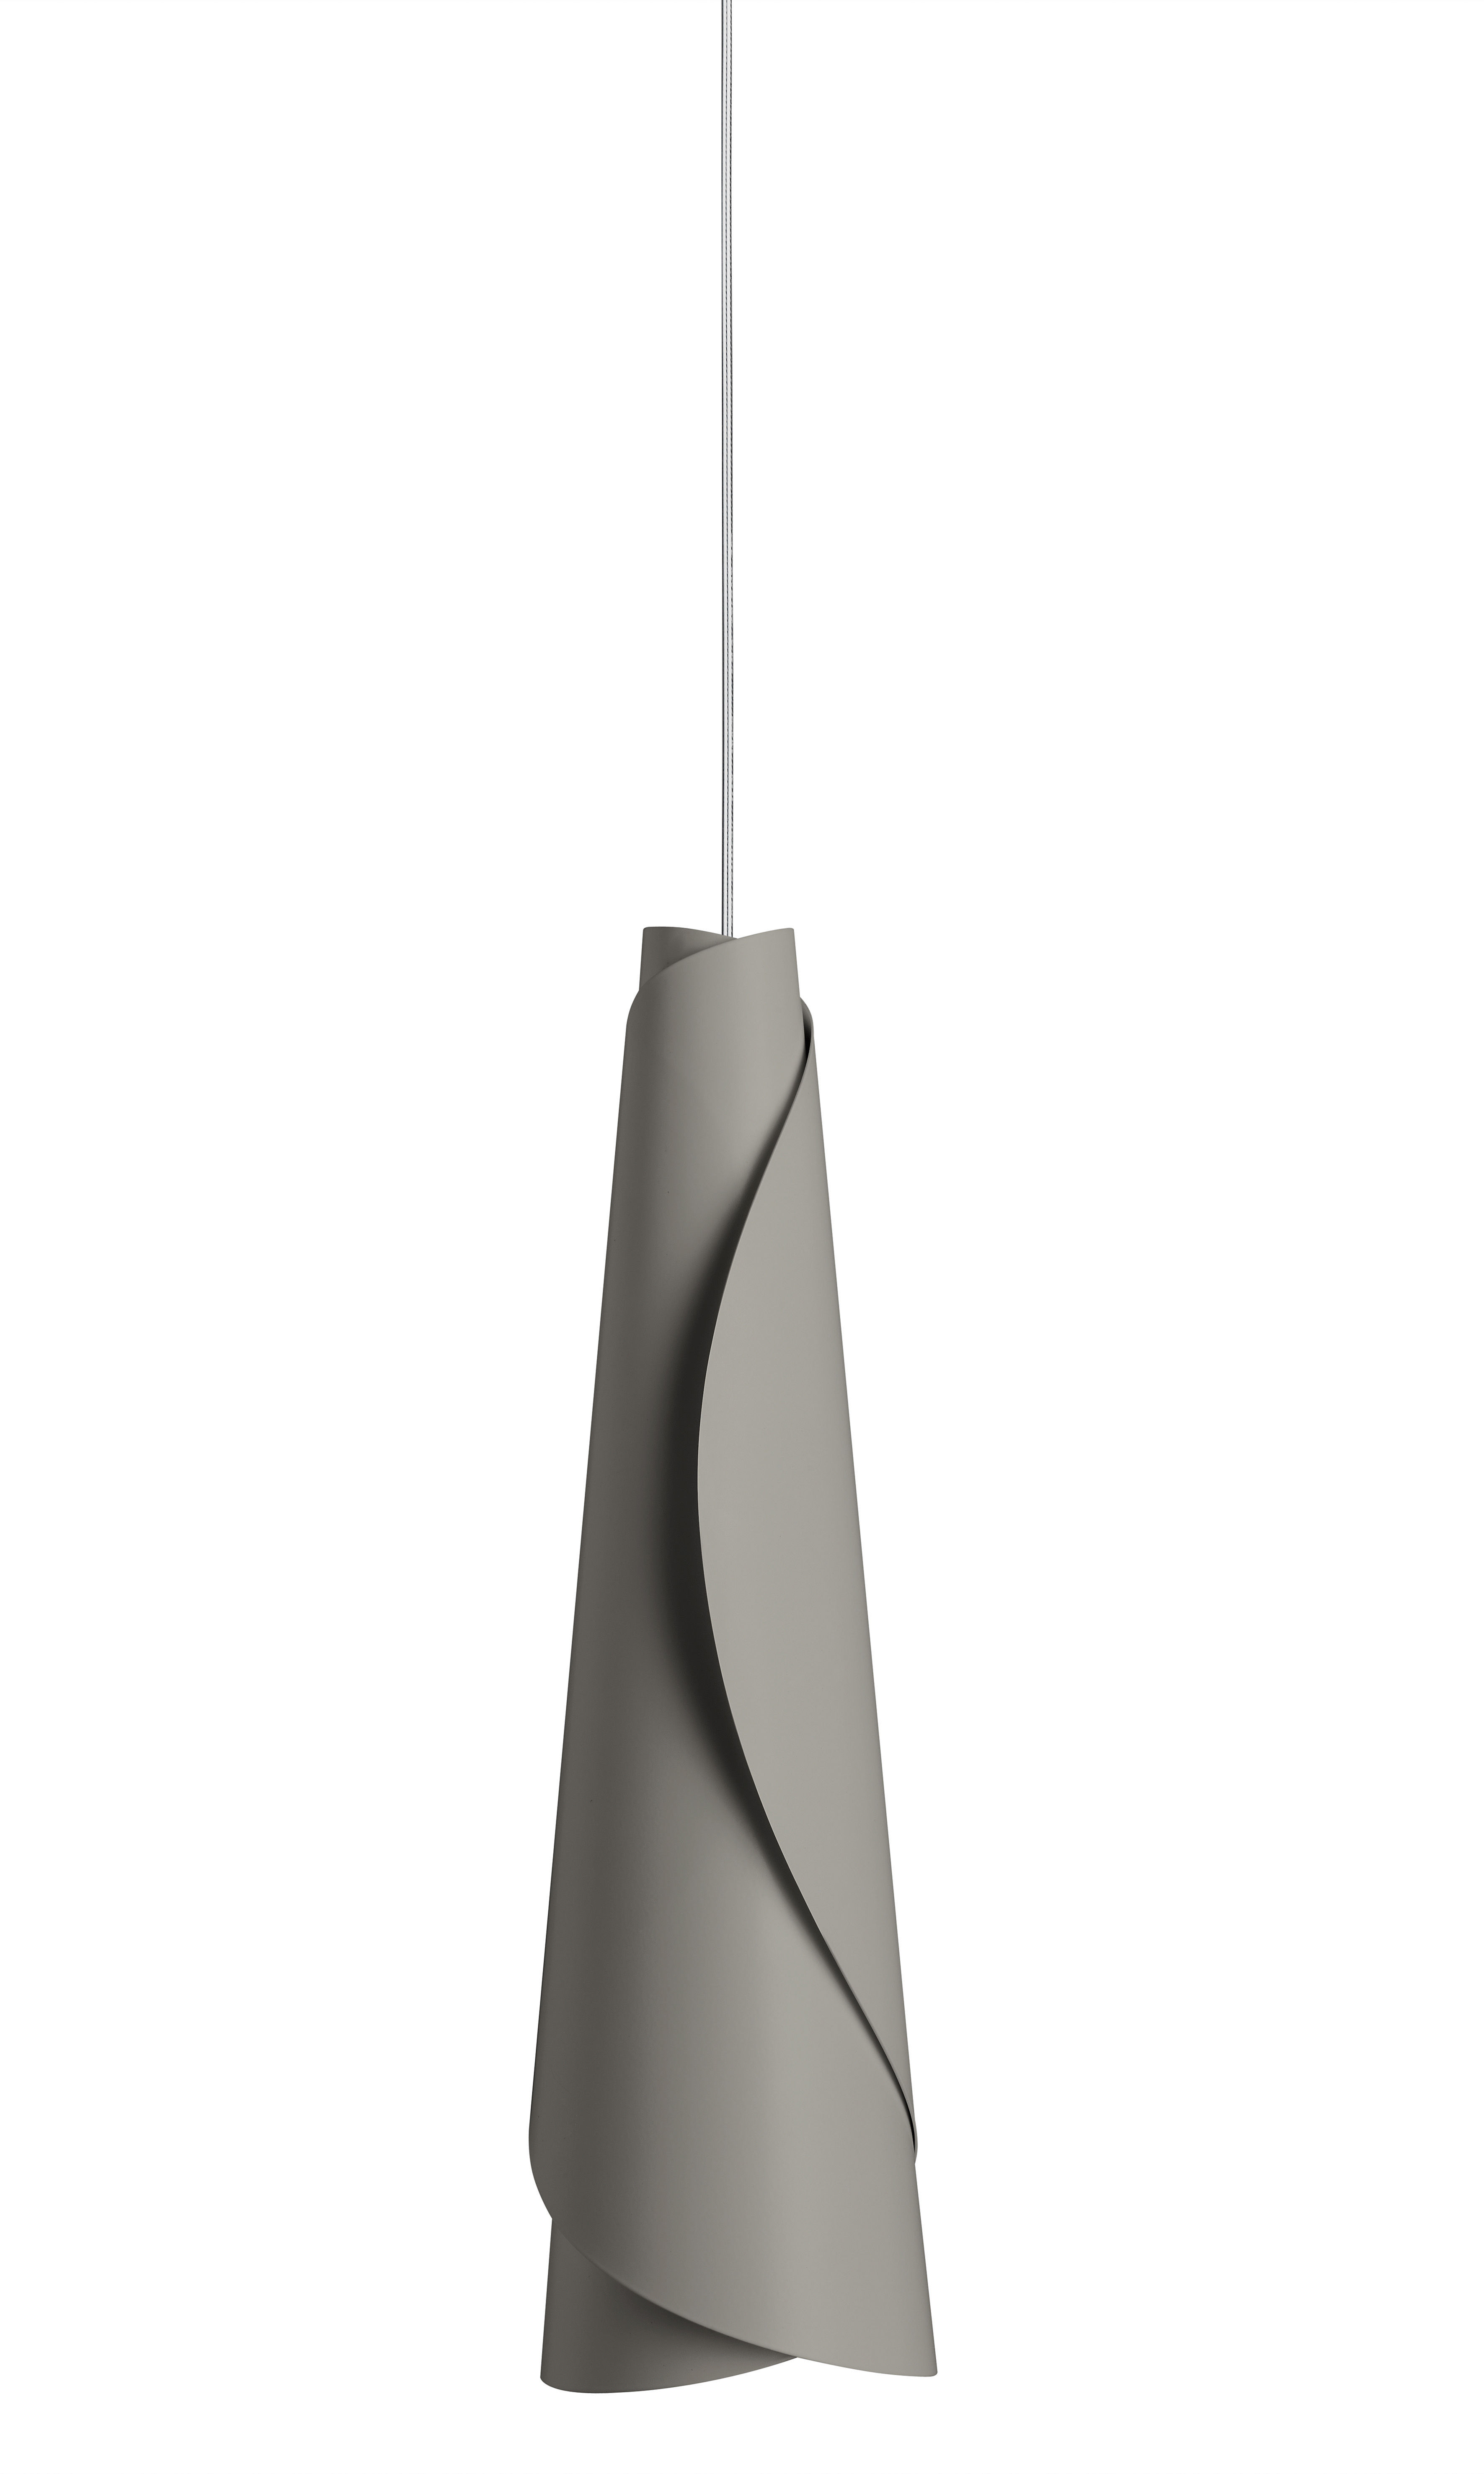 Luminaire - Suspensions - Suspension Maki - Foscarini - Gris - Aluminium laqué